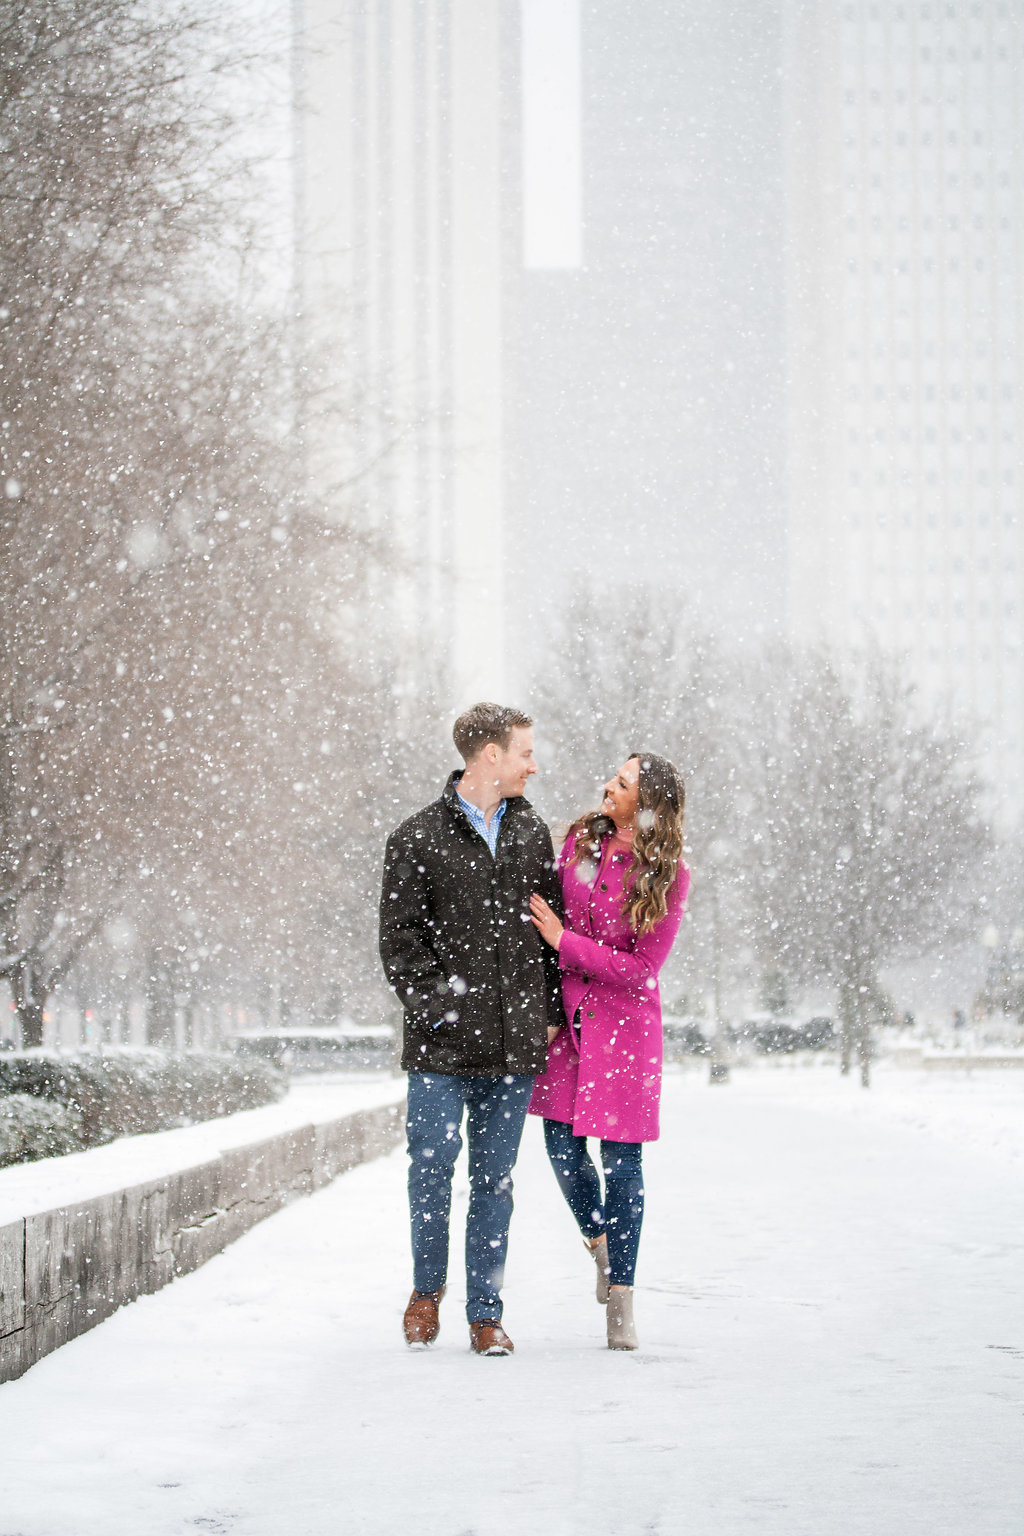 Millennium Park Chicago Illinois Winter Engagement Photographer Taylor Ingles 13